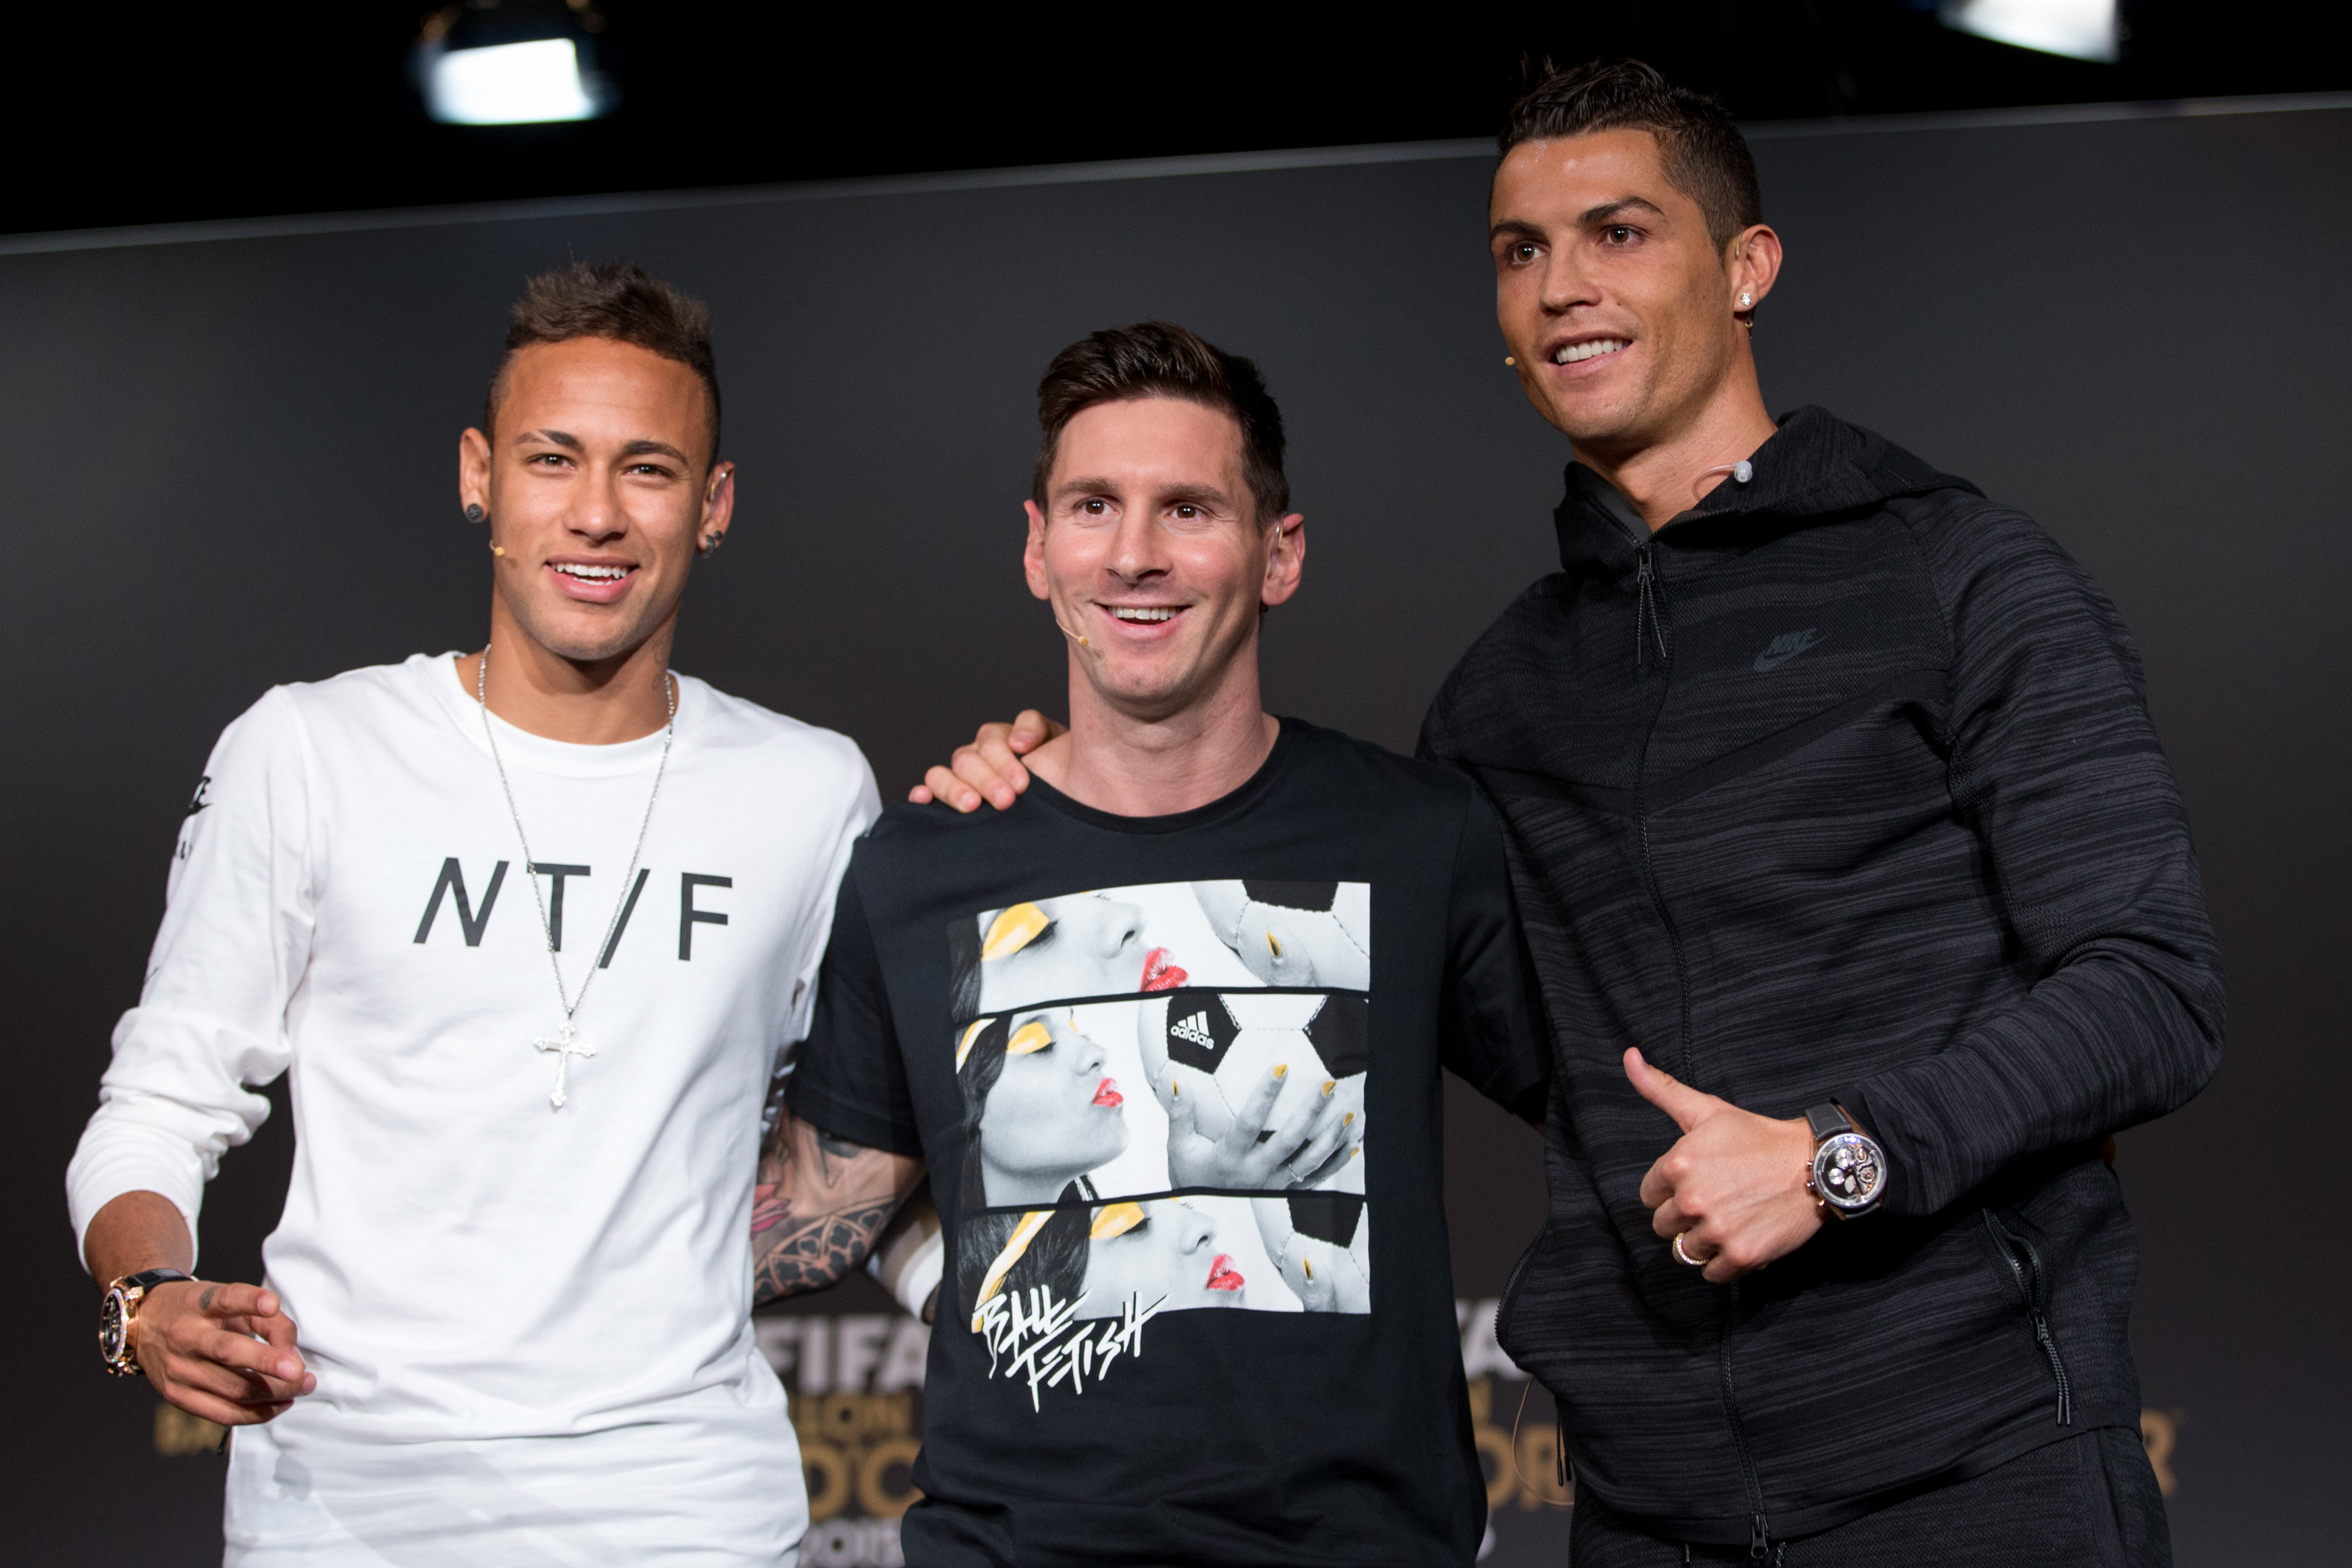 Neymar, Lionel Messi and Cristiano Ronaldo (L-R) (Philipp Schmidli/Getty Images)